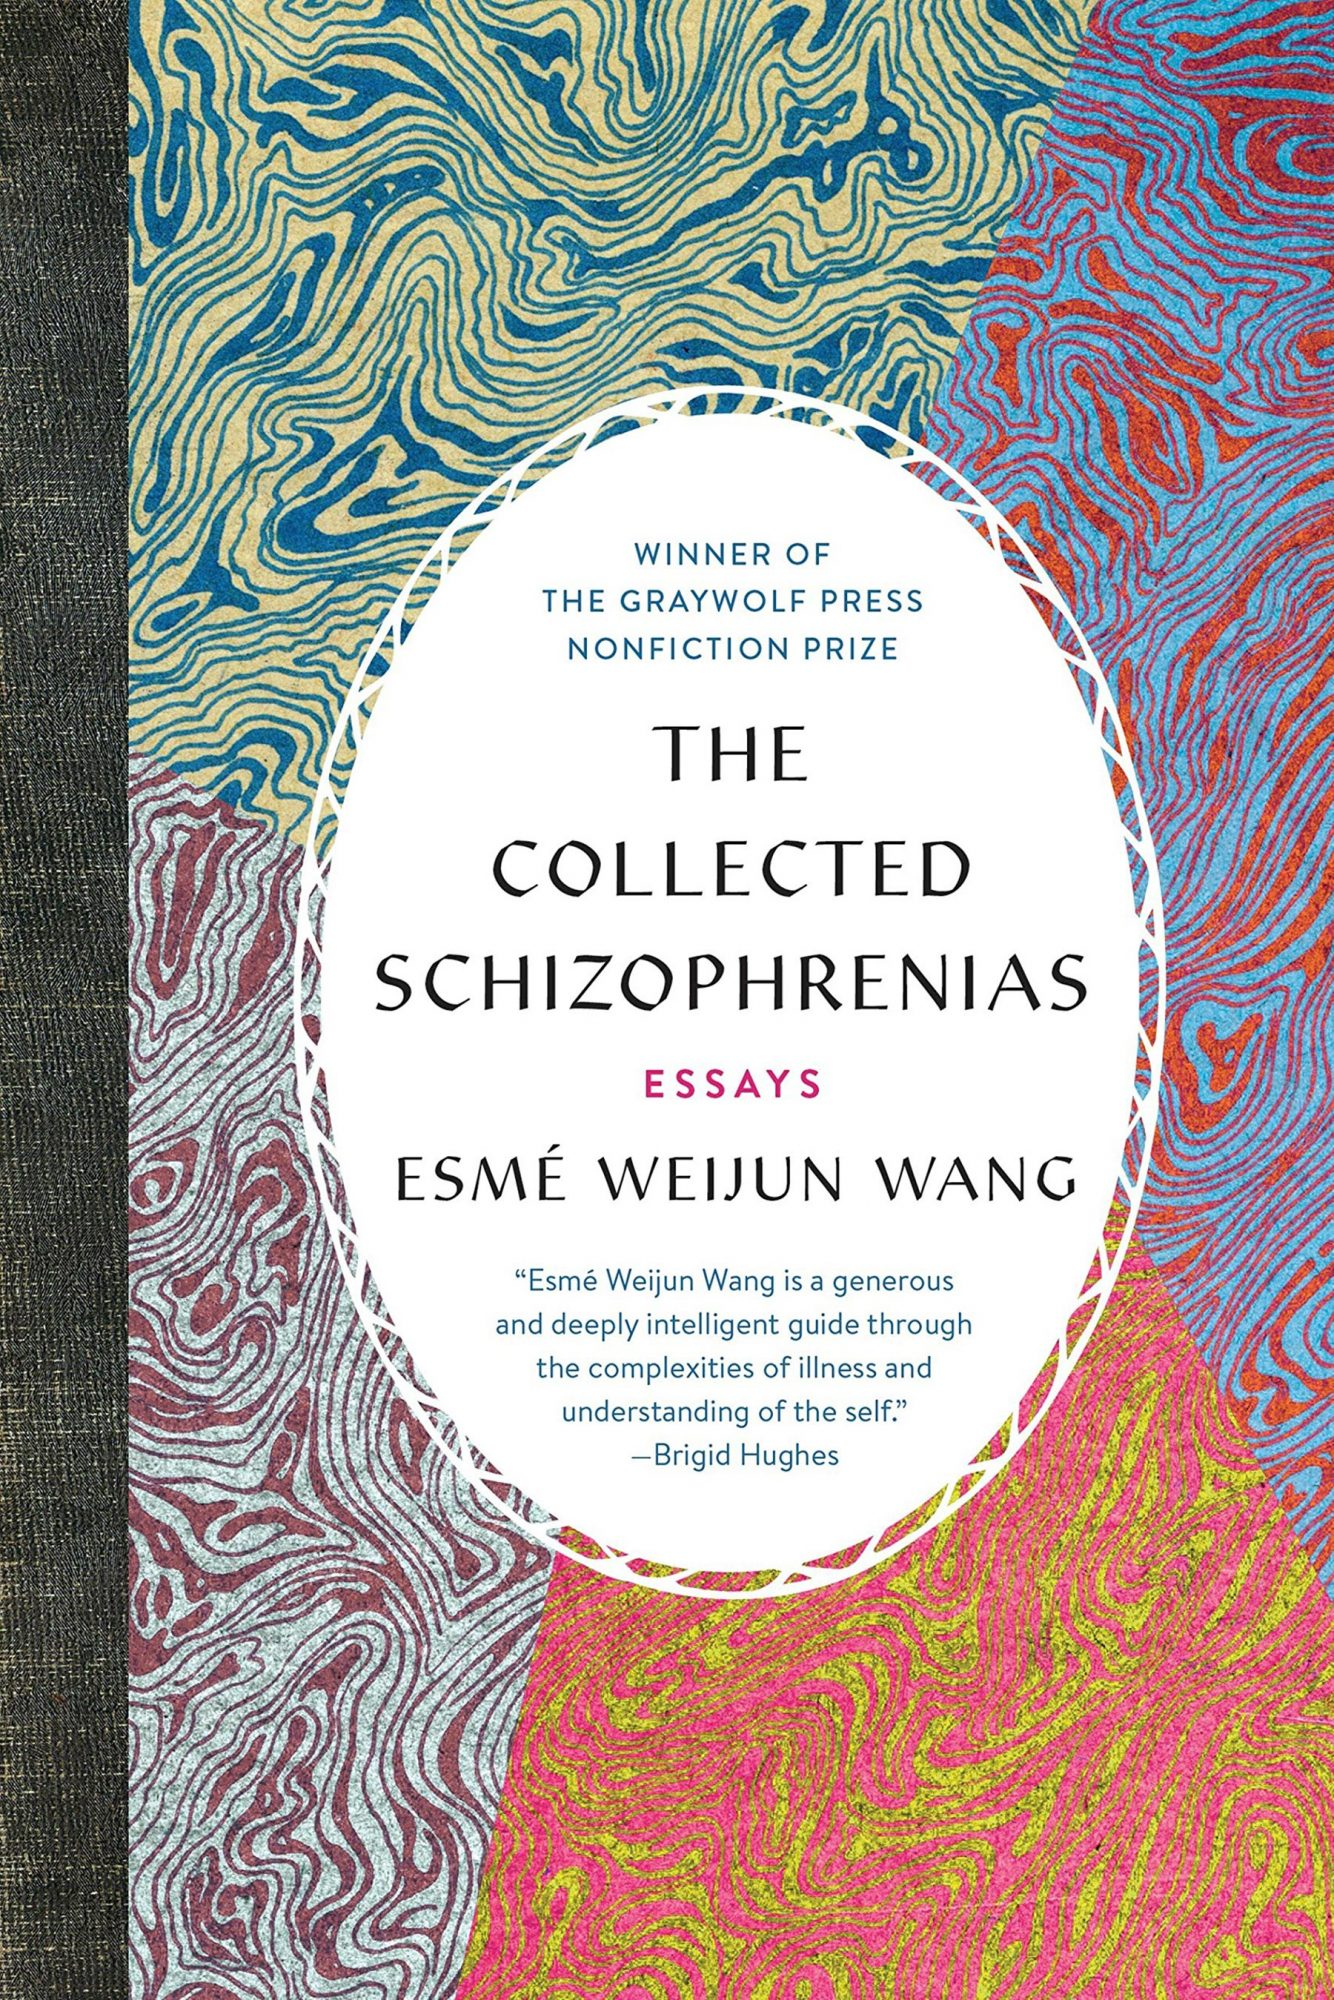 Esme Wang, The Collected Schizophrenias Publisher: Graywolf Press